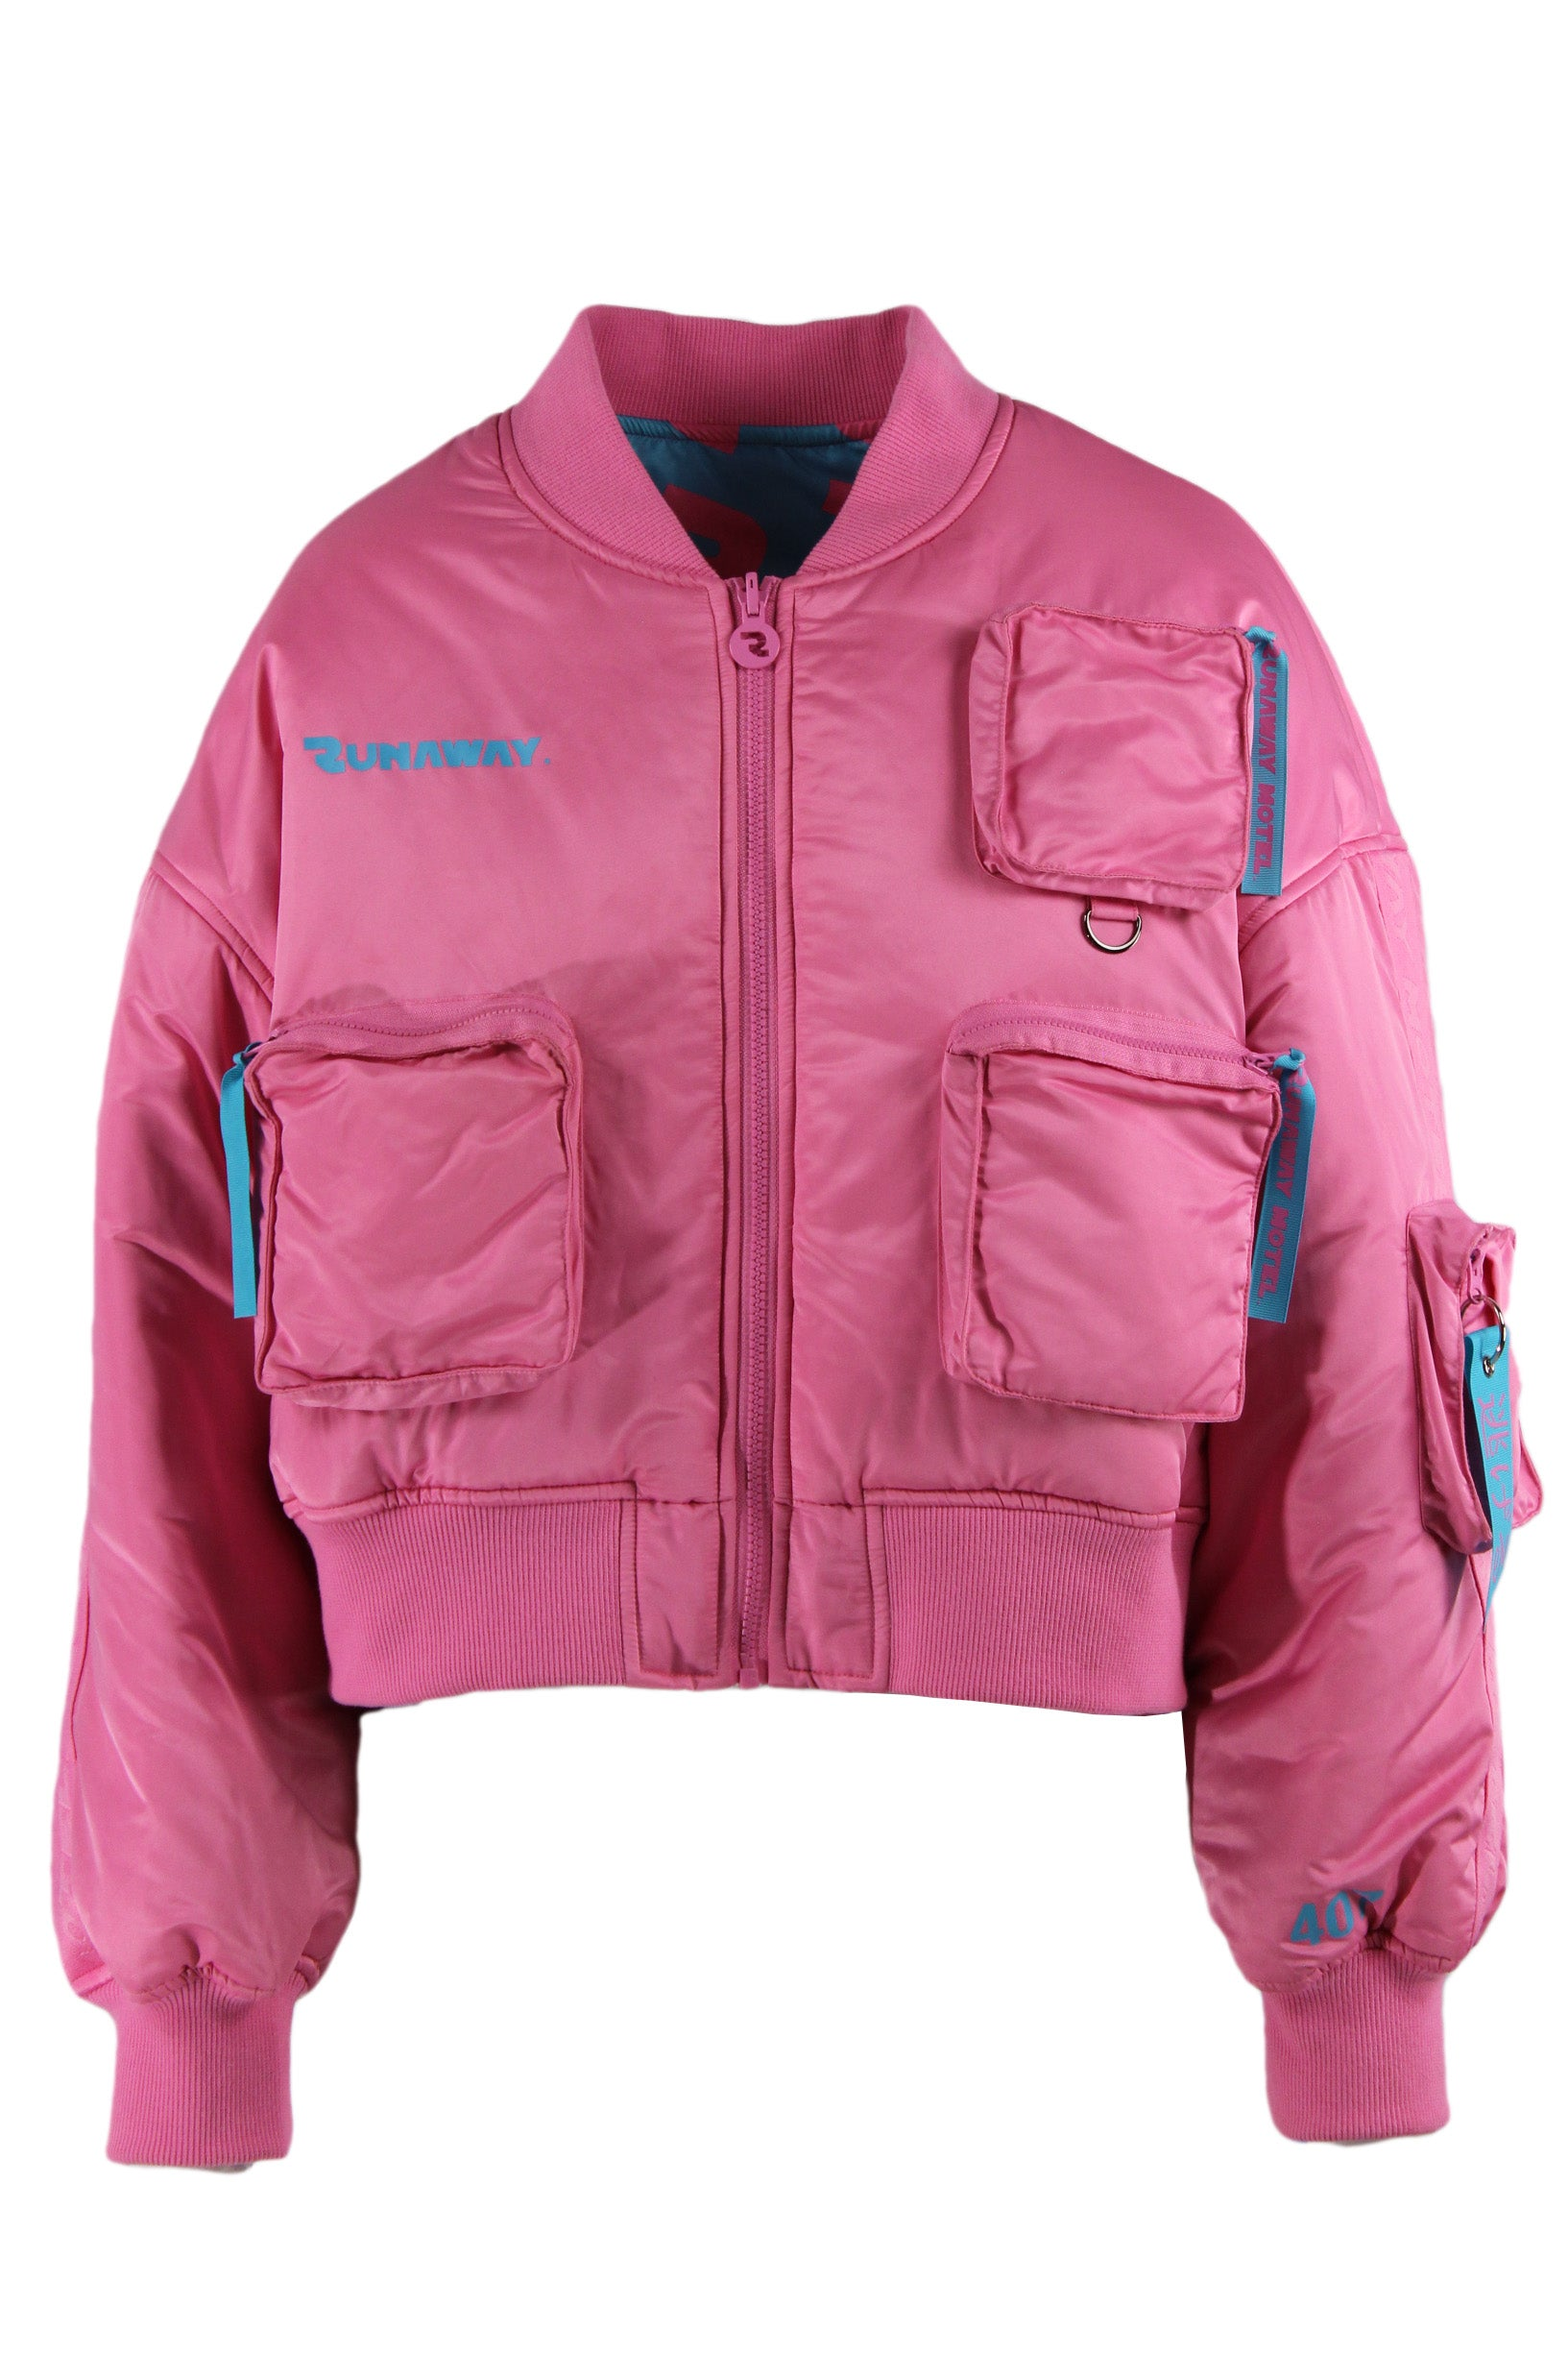 runaway pink short line bomber jacket. features four zipper pockets & a zipper closure.